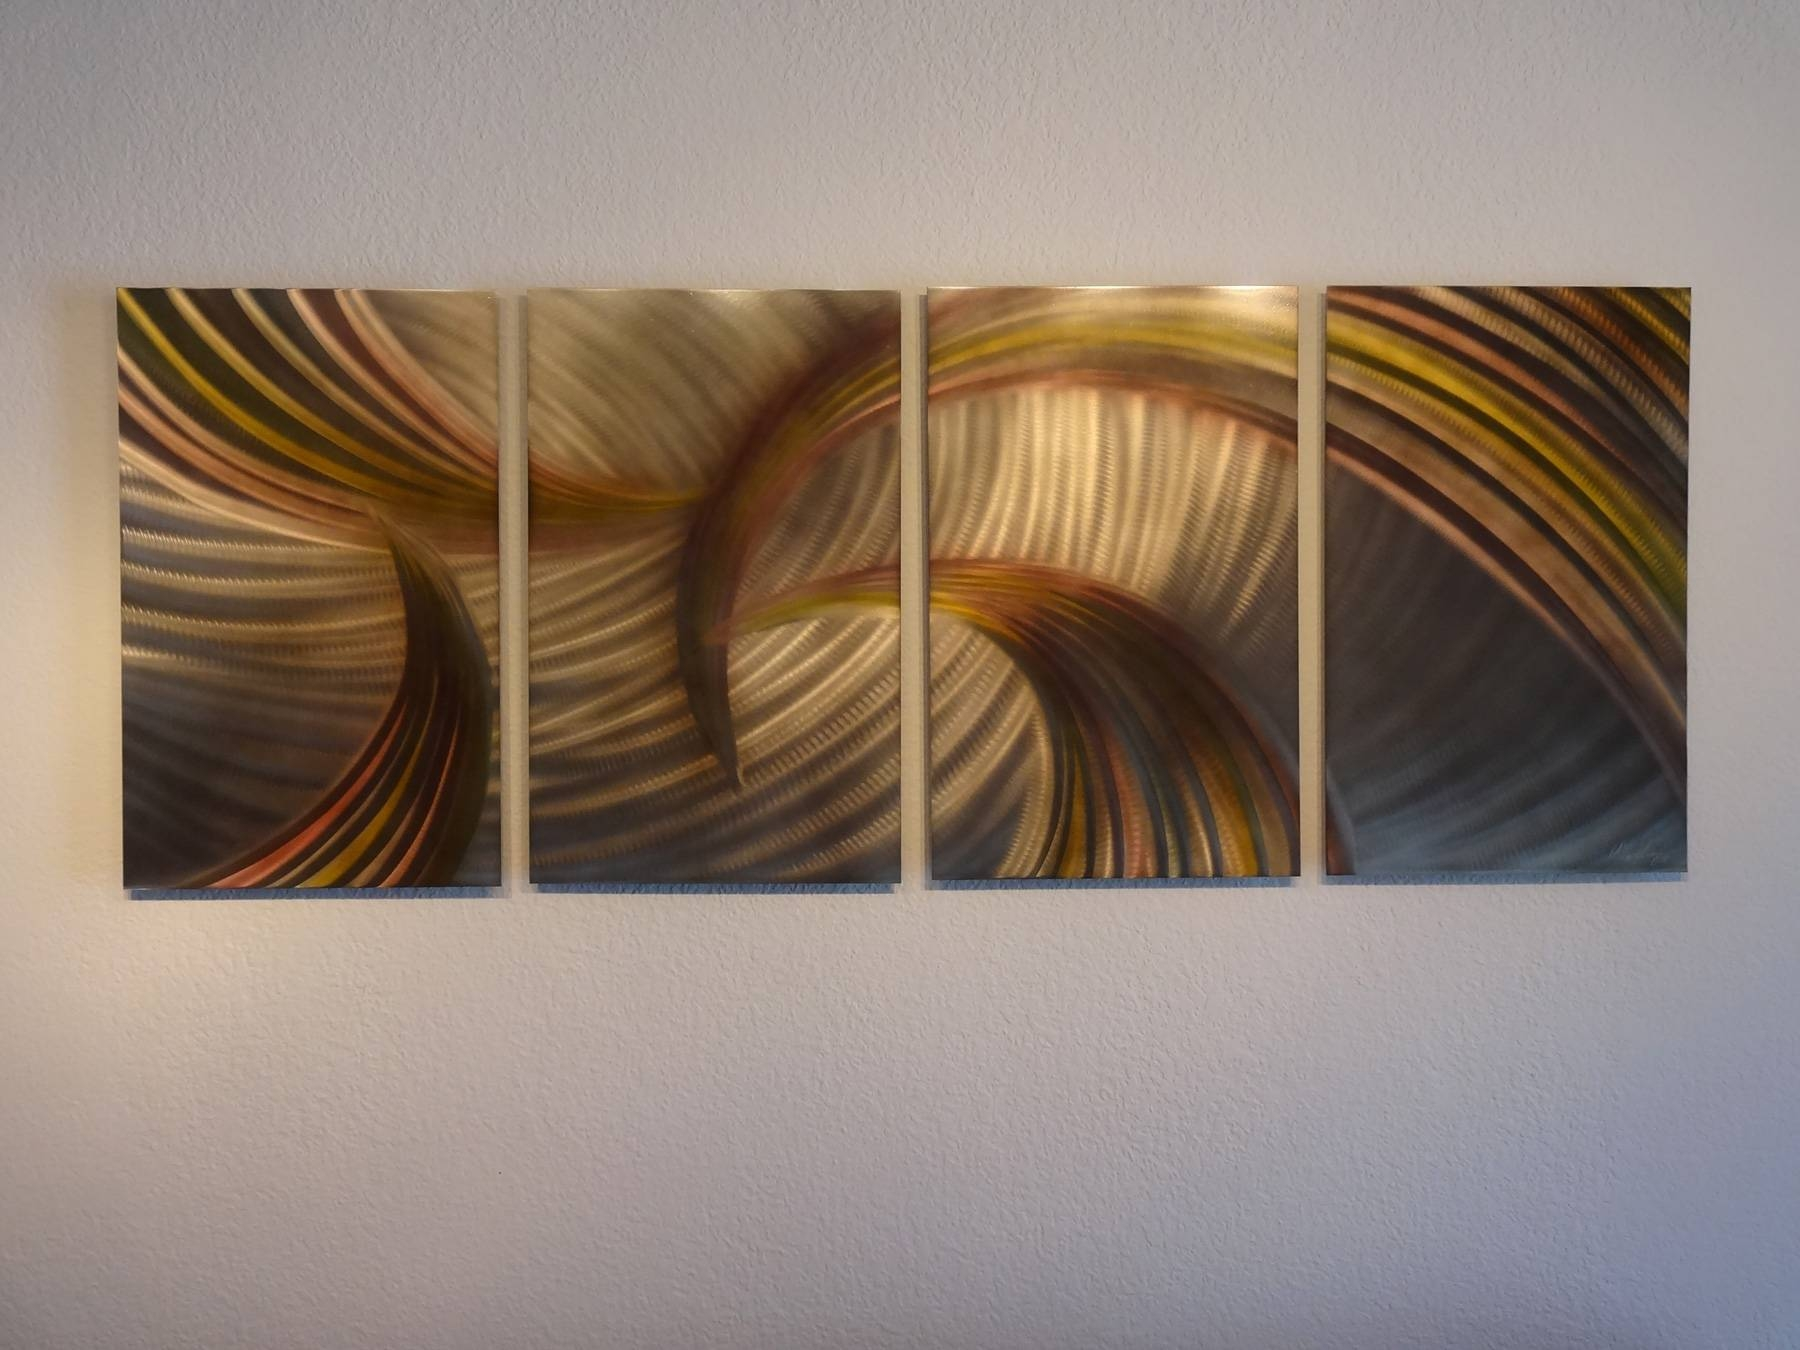 Tempest Bronze – Abstract Metal Wall Art Contemporary Modern Decor Within Current Contemporary Metal Wall Art Decor (View 14 of 20)